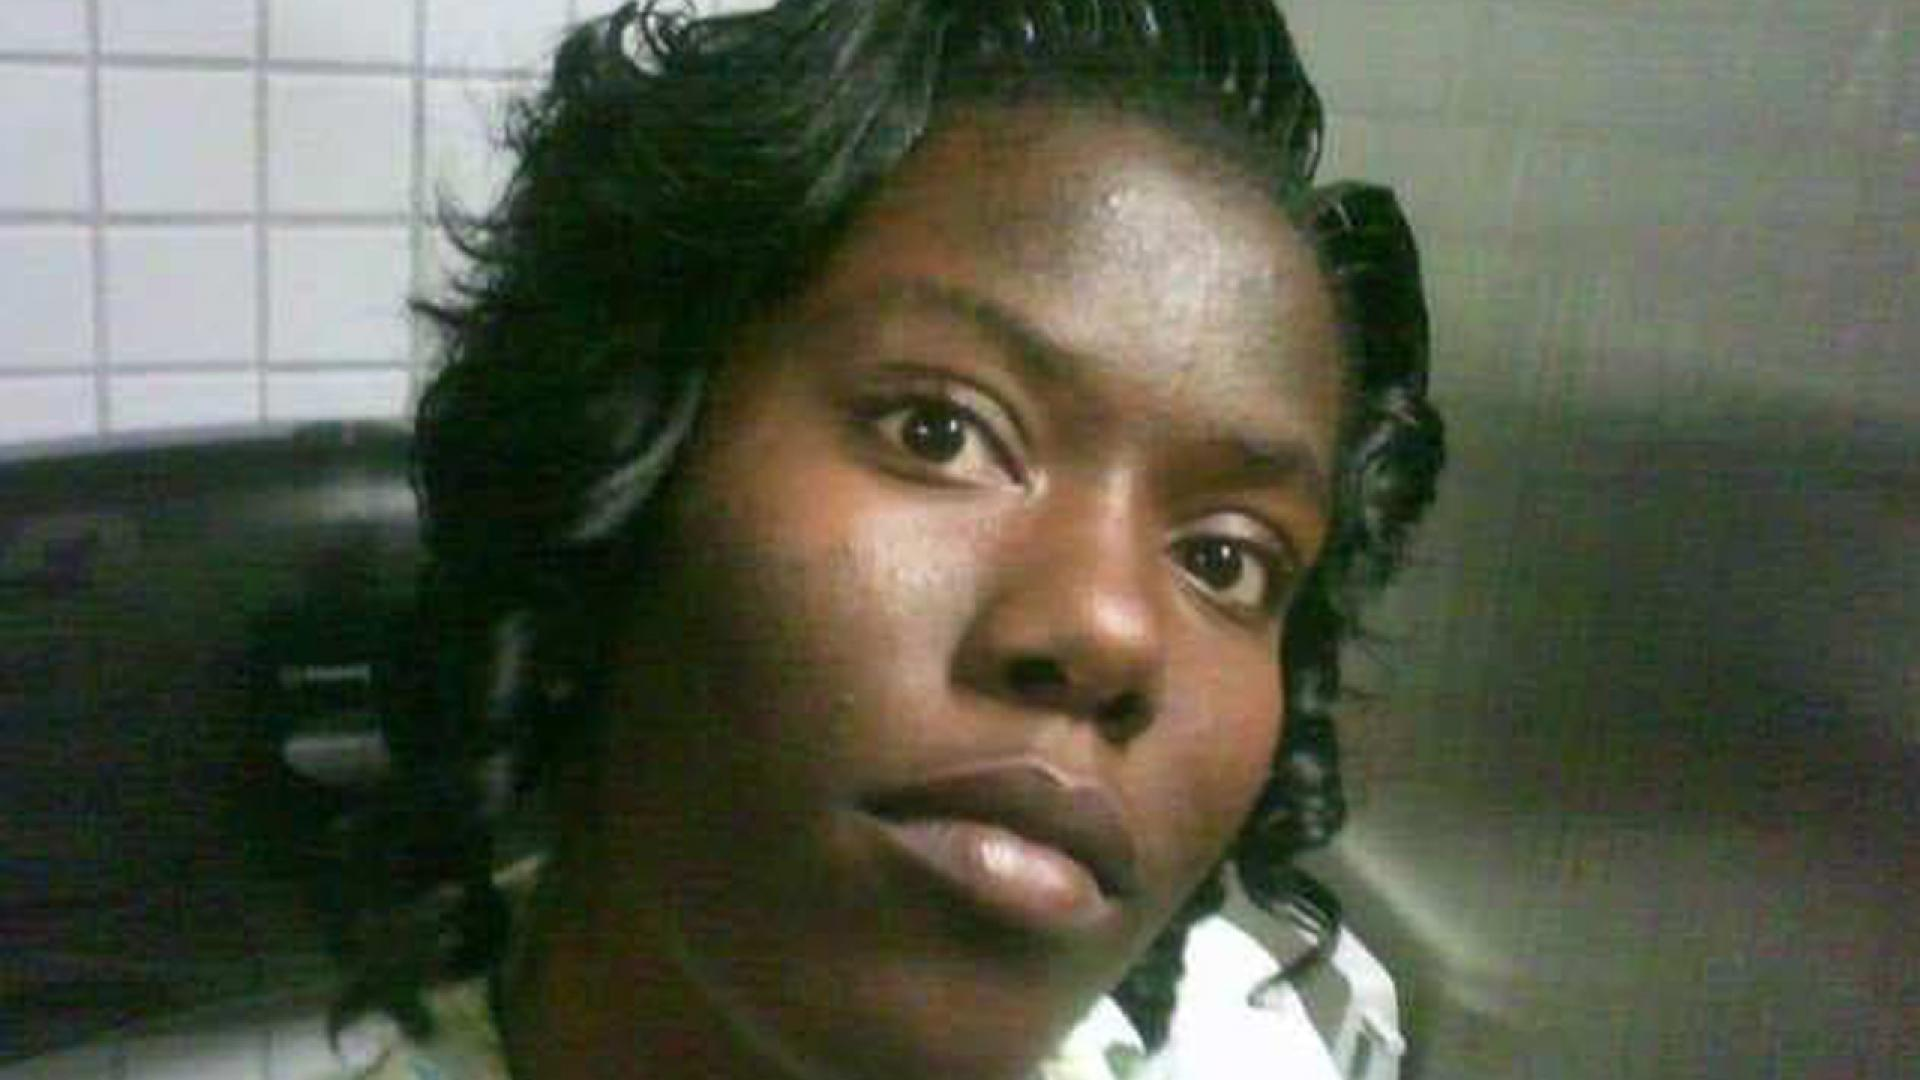 Tammy Jackson gave birth in her jail cell.